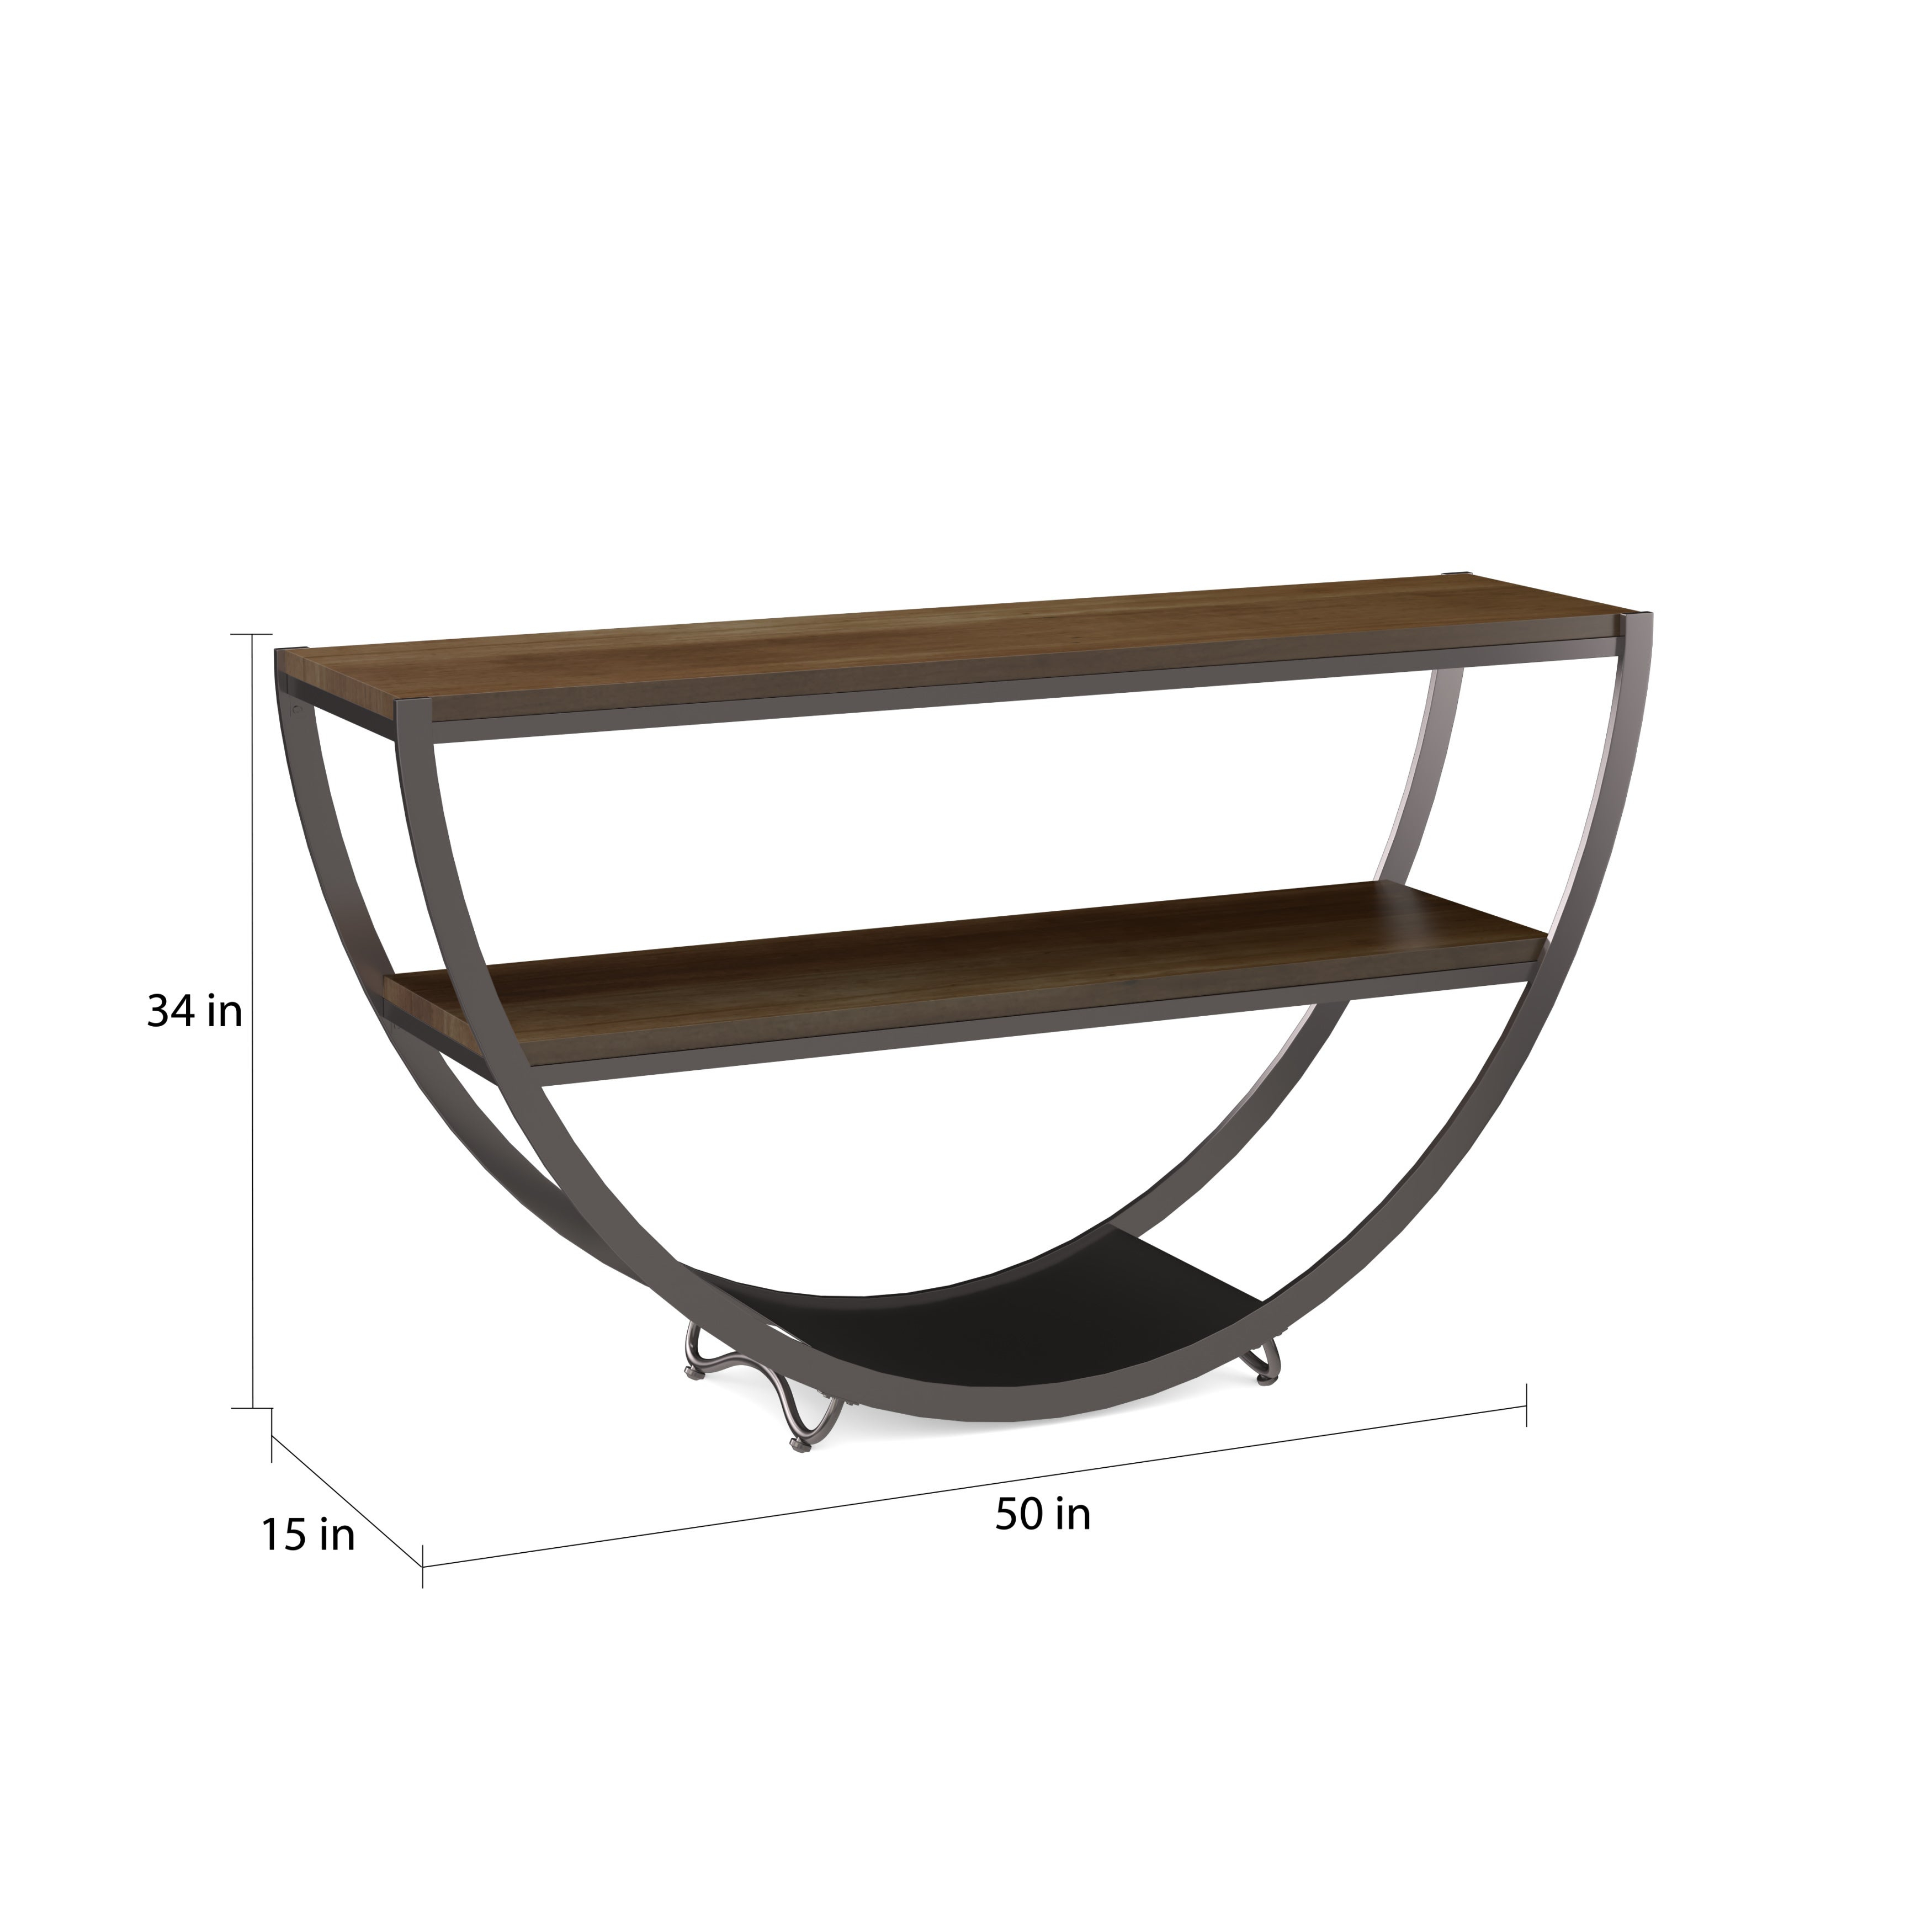 Carbon Loft Cohn Vintage Industrial Console Table In 2018 Presson 3 Piece Counter Height Dining Sets (Photo 12 of 20)